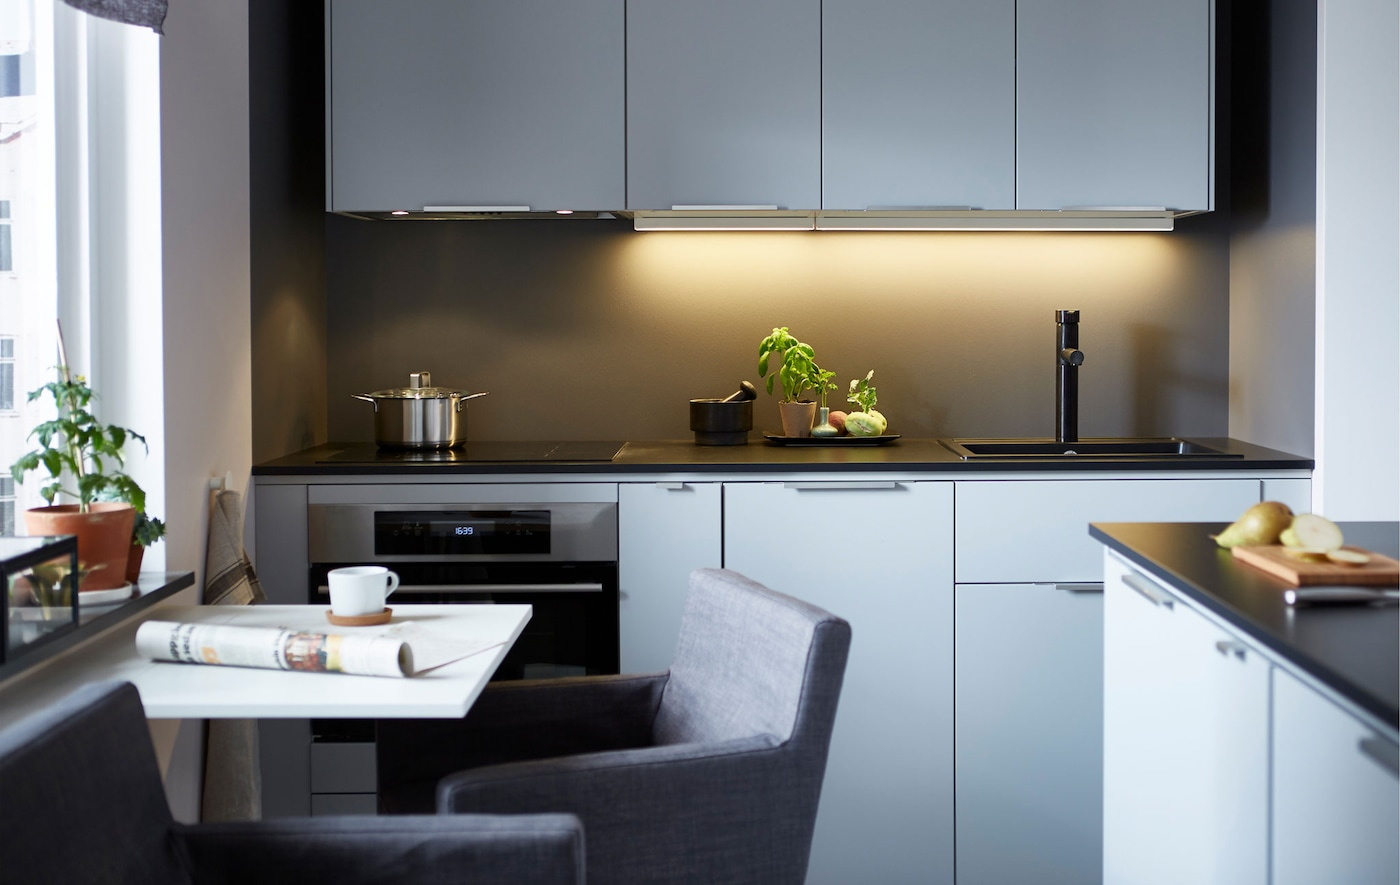 A modern, sleek kitchen with a wall of light-colored cabinets, dark counter tops and a small dining table.